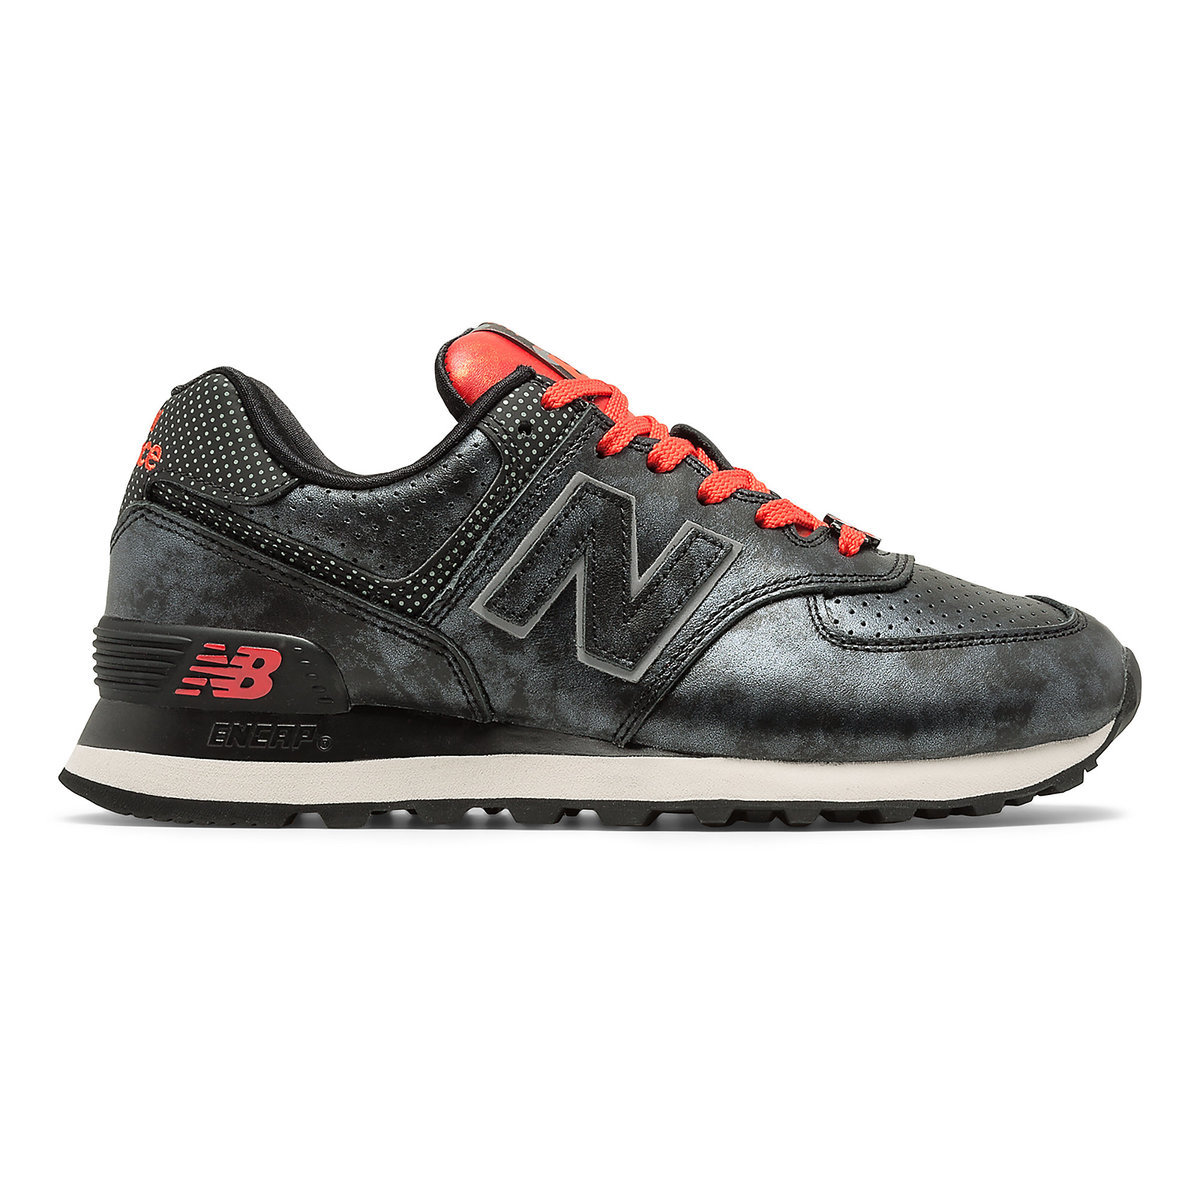 e91e732567ee Product Image of Minnie Mouse 574 Sneakers for Women by New Balance   1